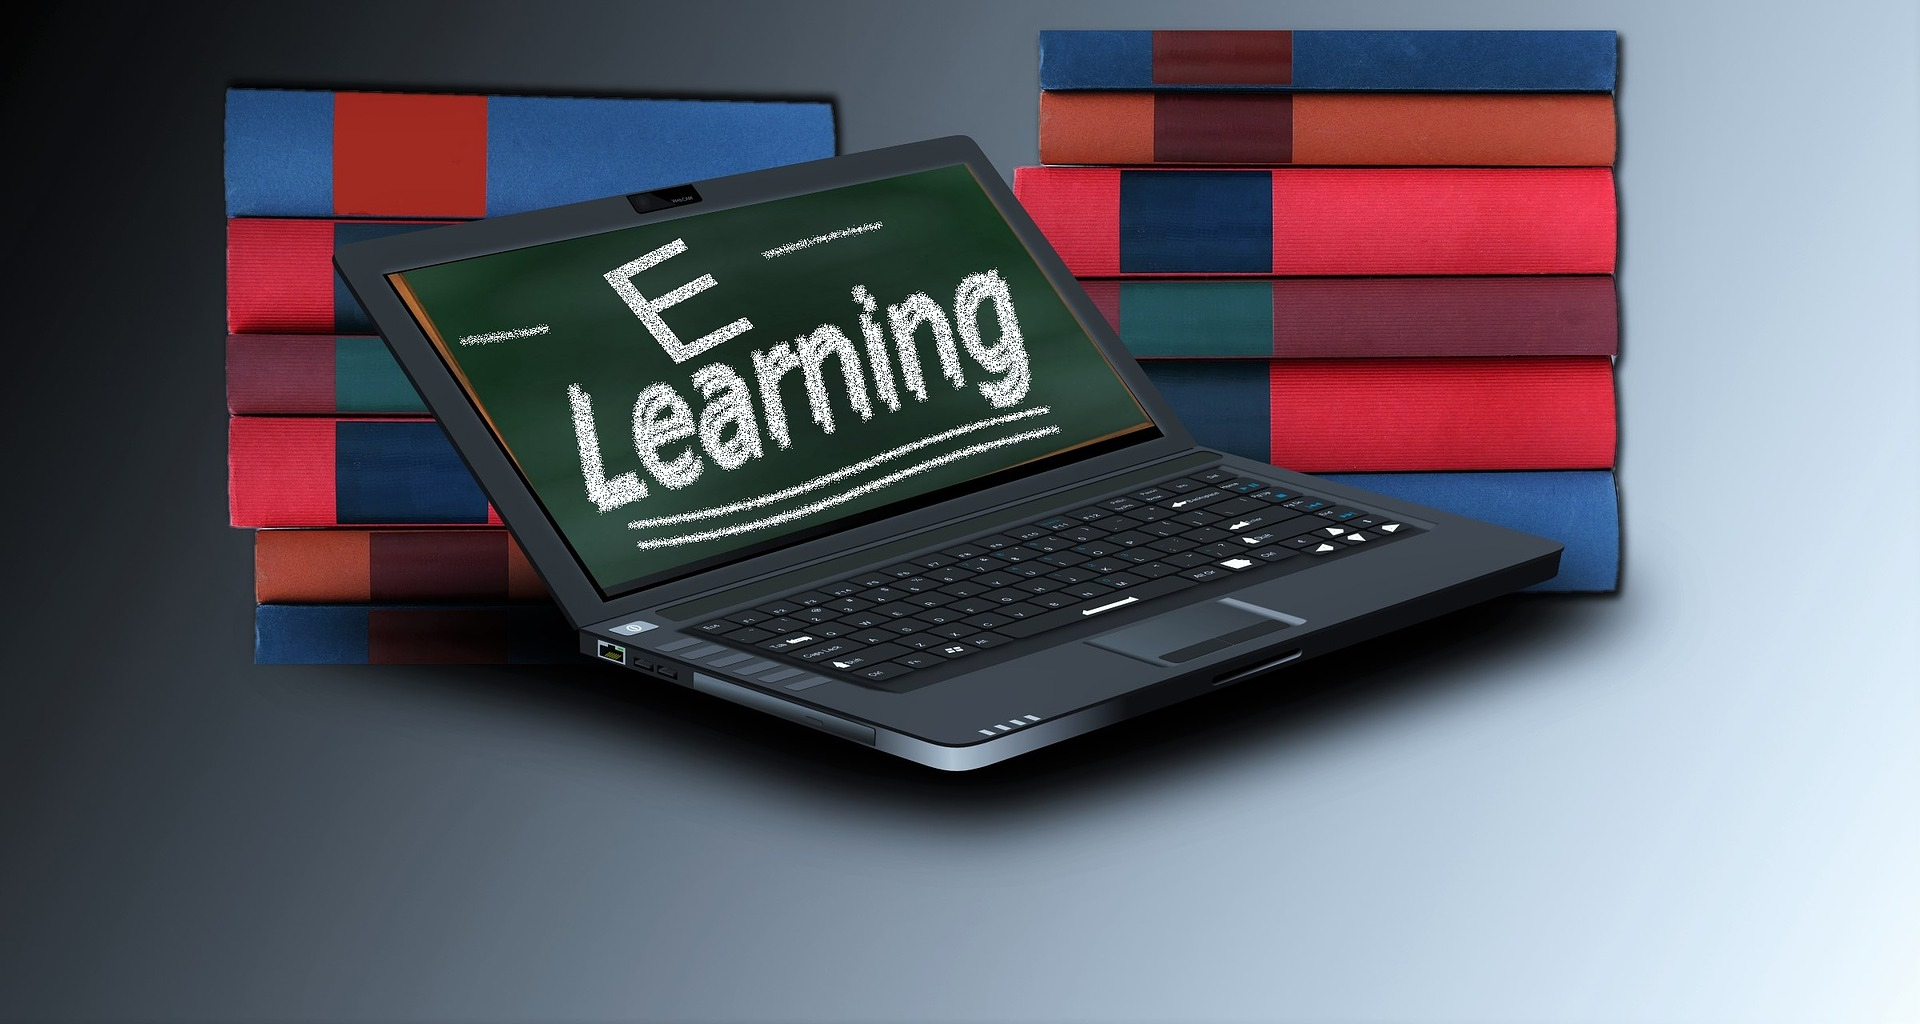 The importance of quality instructional design